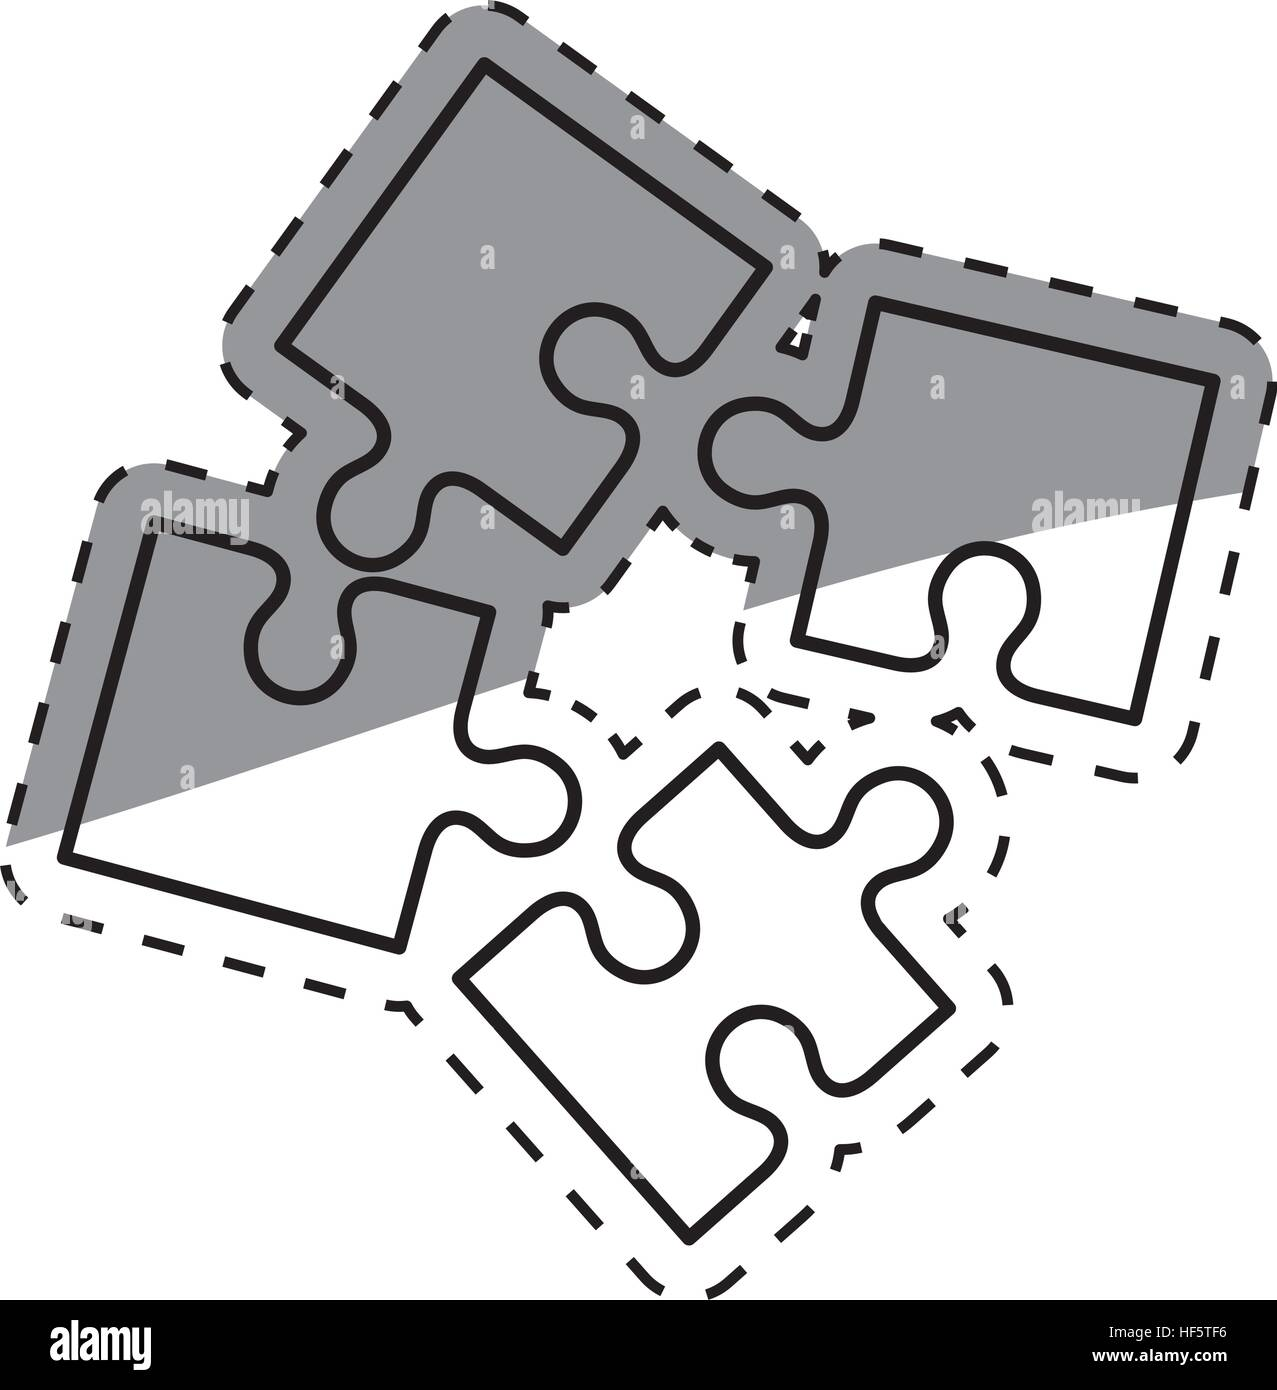 Puzzle Pieces Concept Icon Vector Stock Photos & Puzzle Pieces ...